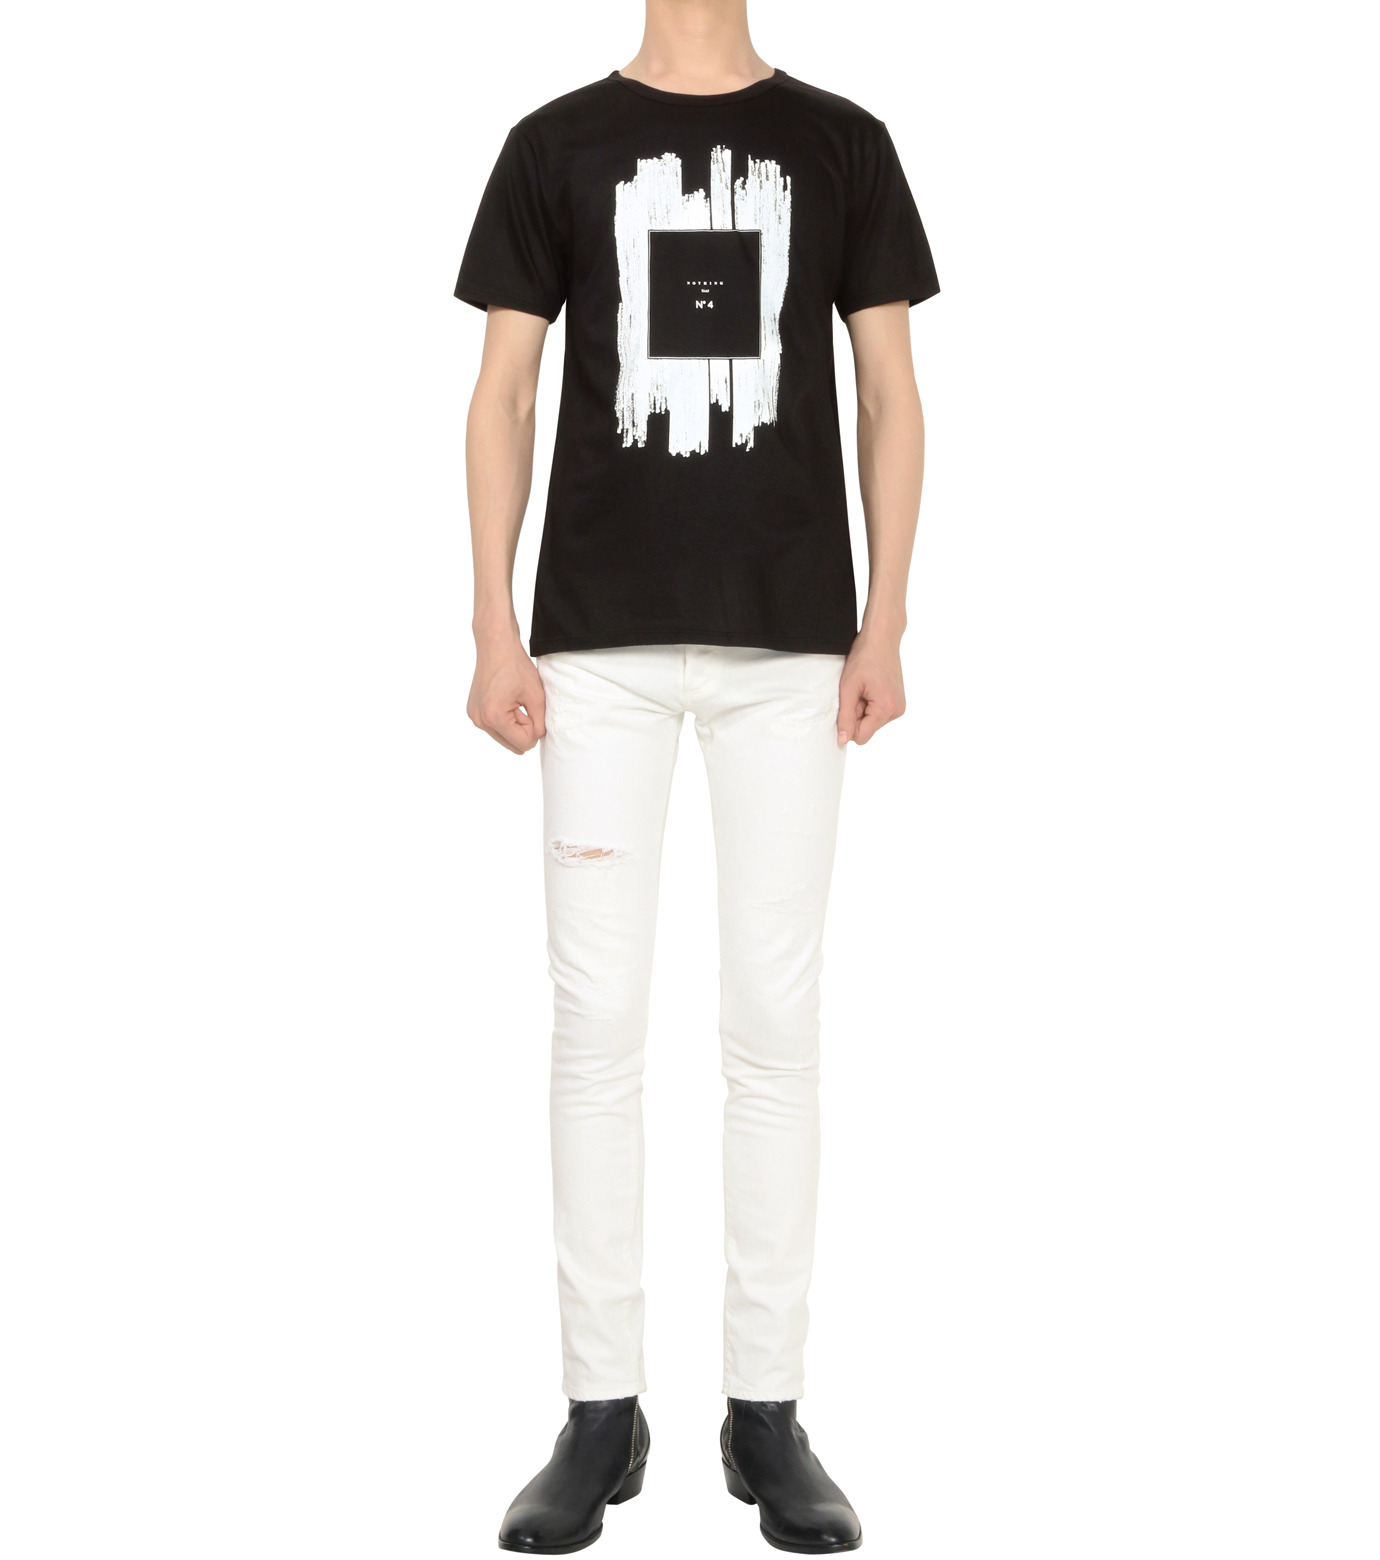 HL HEDDIE LOVU(エイチエル・エディールーヴ)のNOTHING pt TEE-BLACK(カットソー/cut and sewn)-18S92011-13 拡大詳細画像4